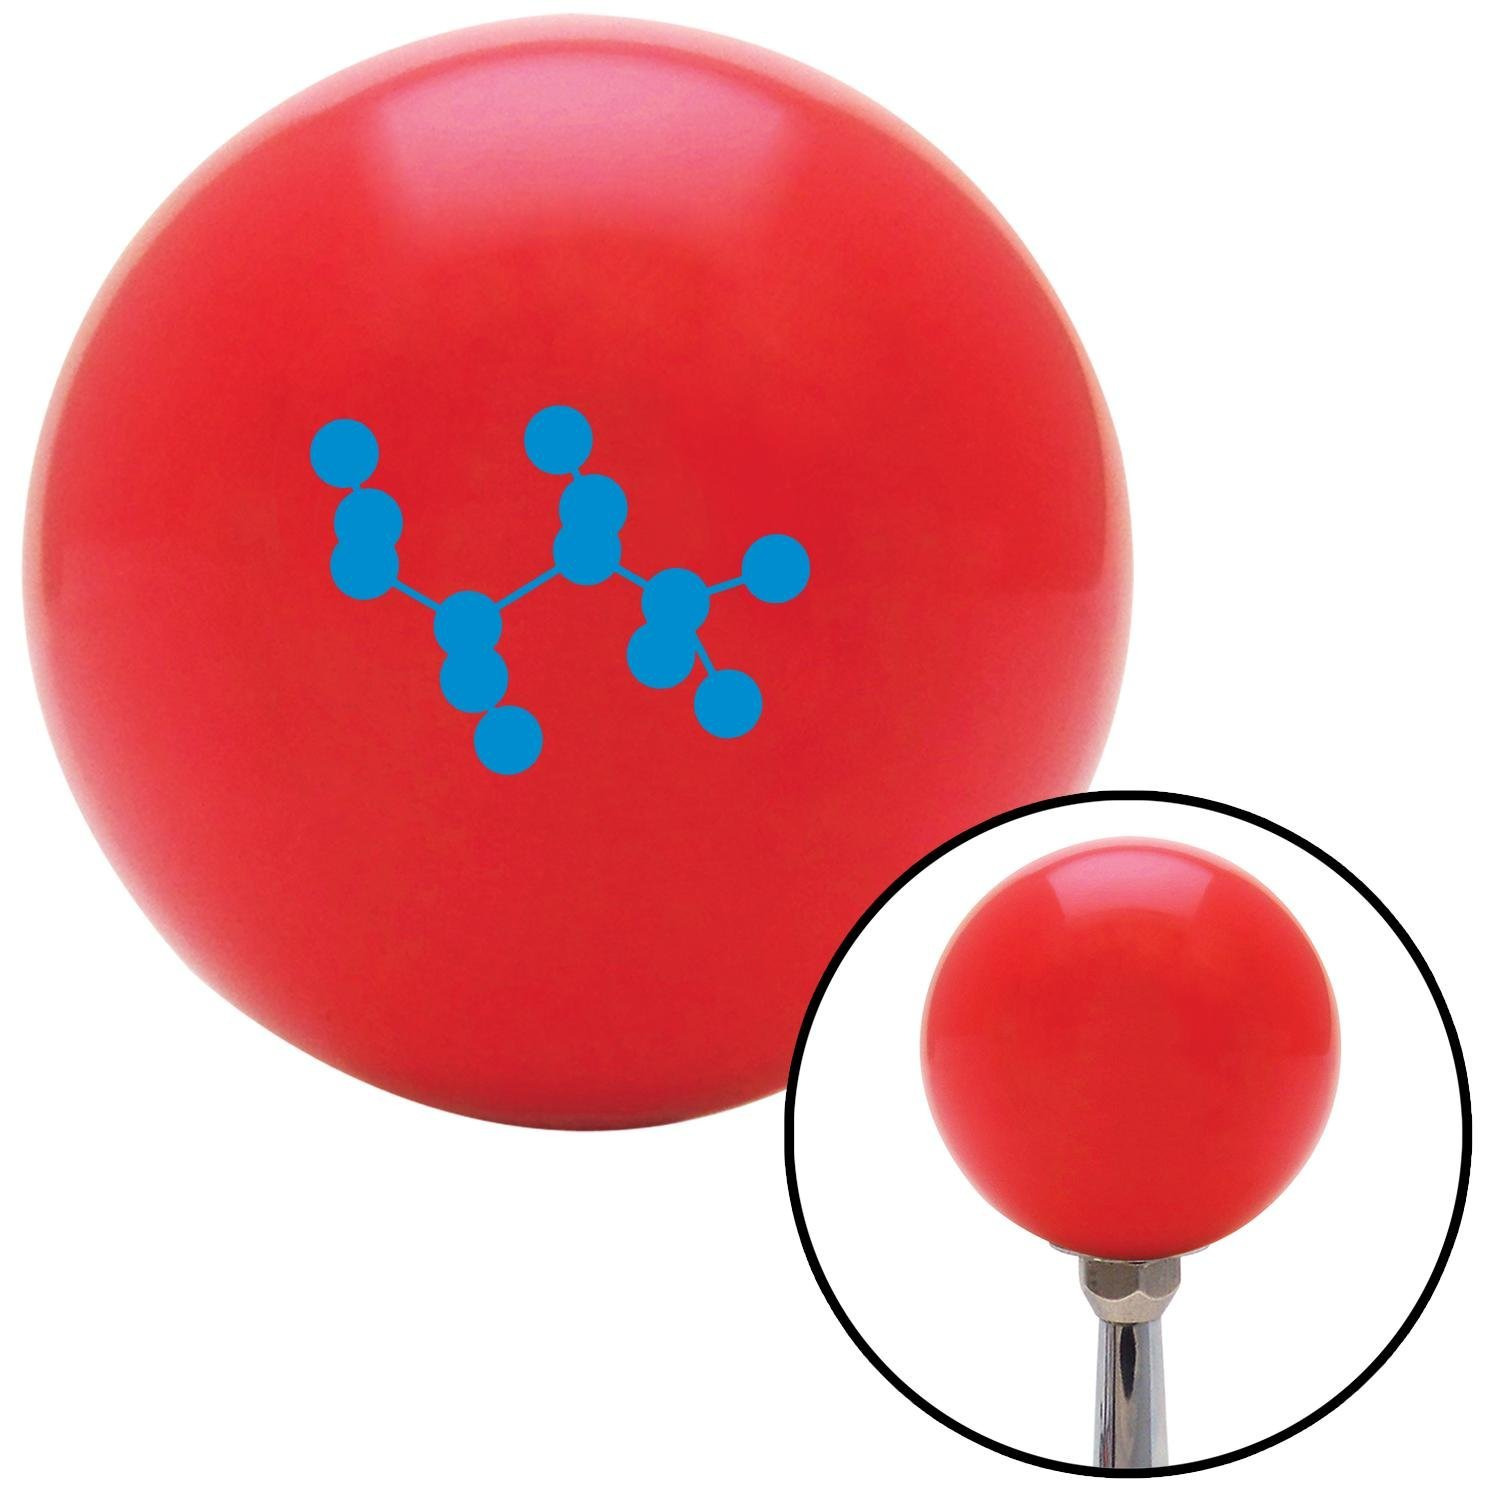 Blue Molecule Structure American Shifter 99580 Red Shift Knob with M16 x 1.5 Insert